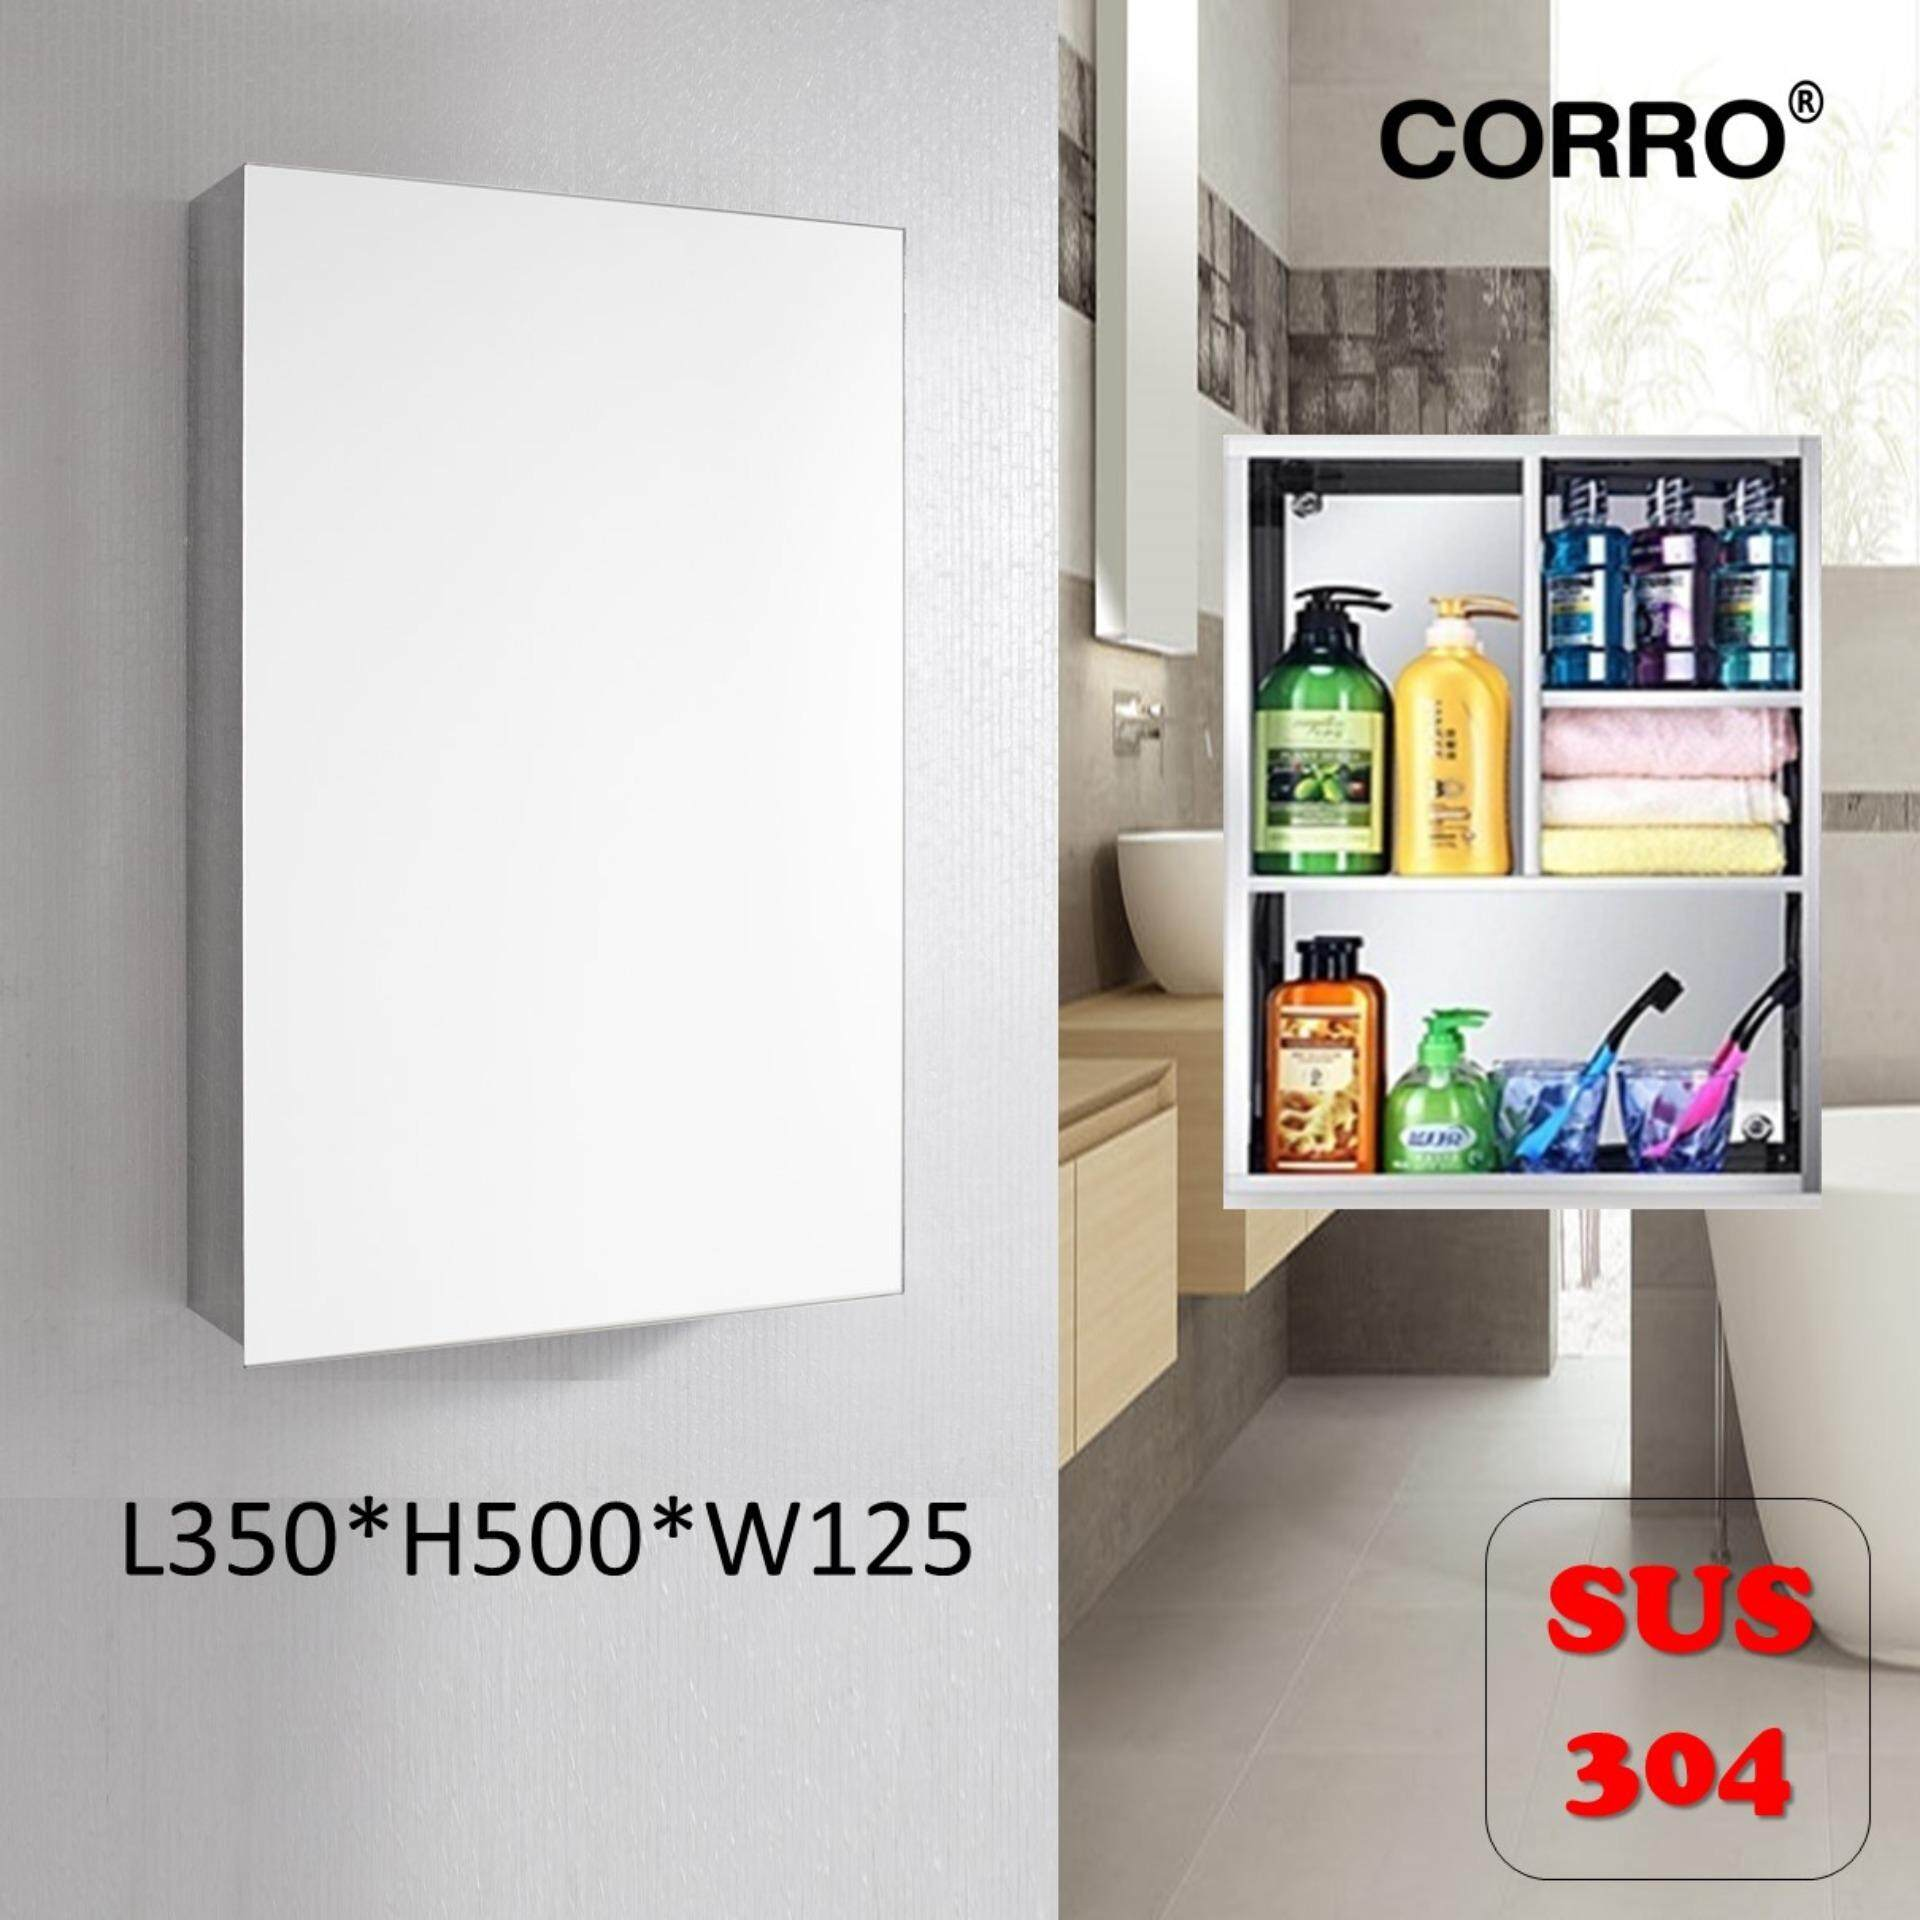 CORRO SUS304 Stainless Steel Bathroom Mirror Cabinet-(350x550mm)